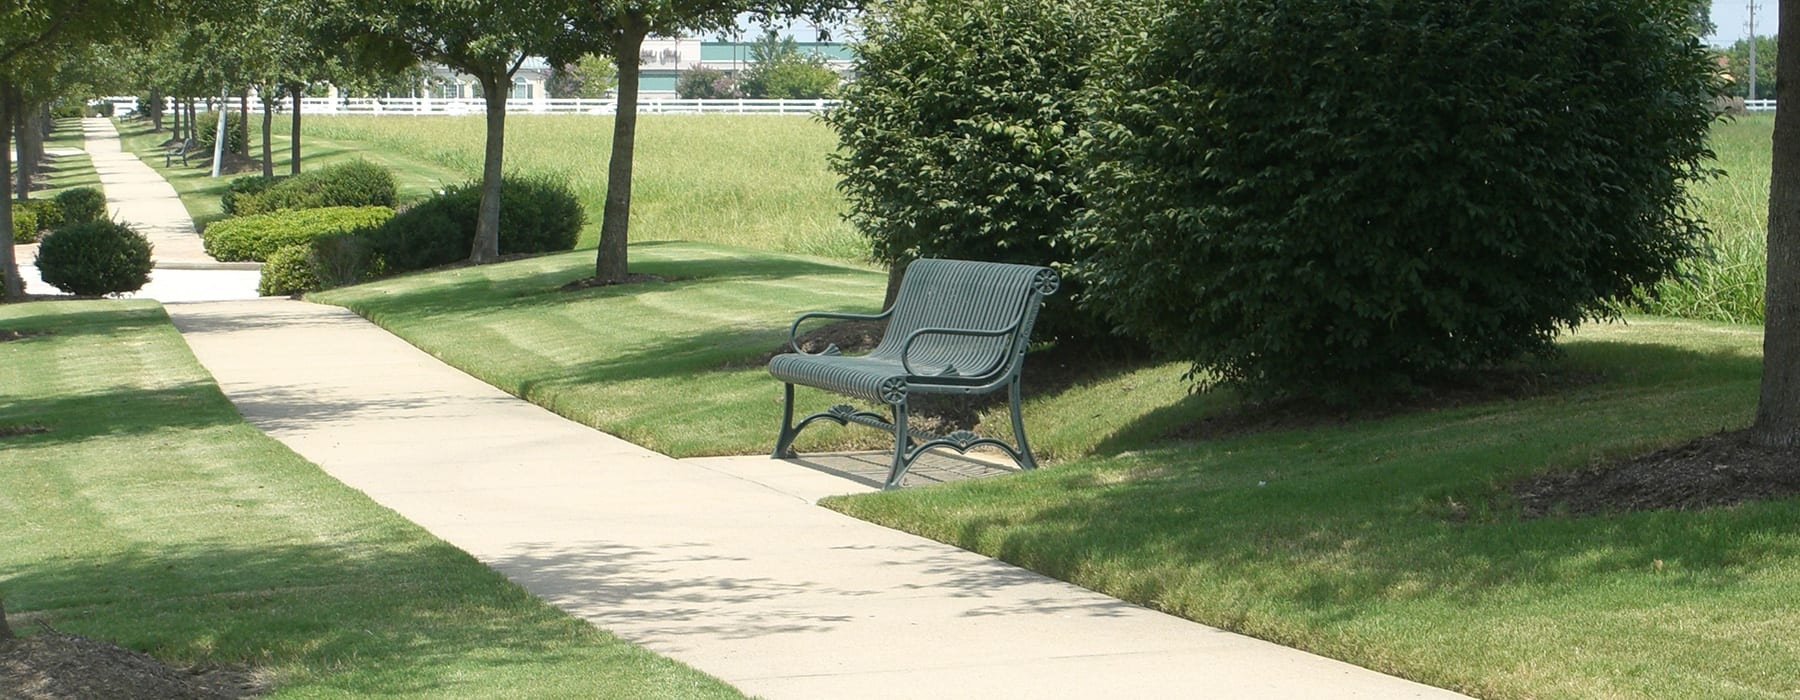 rolling hills, walkways and a bench in nearby neighborhood